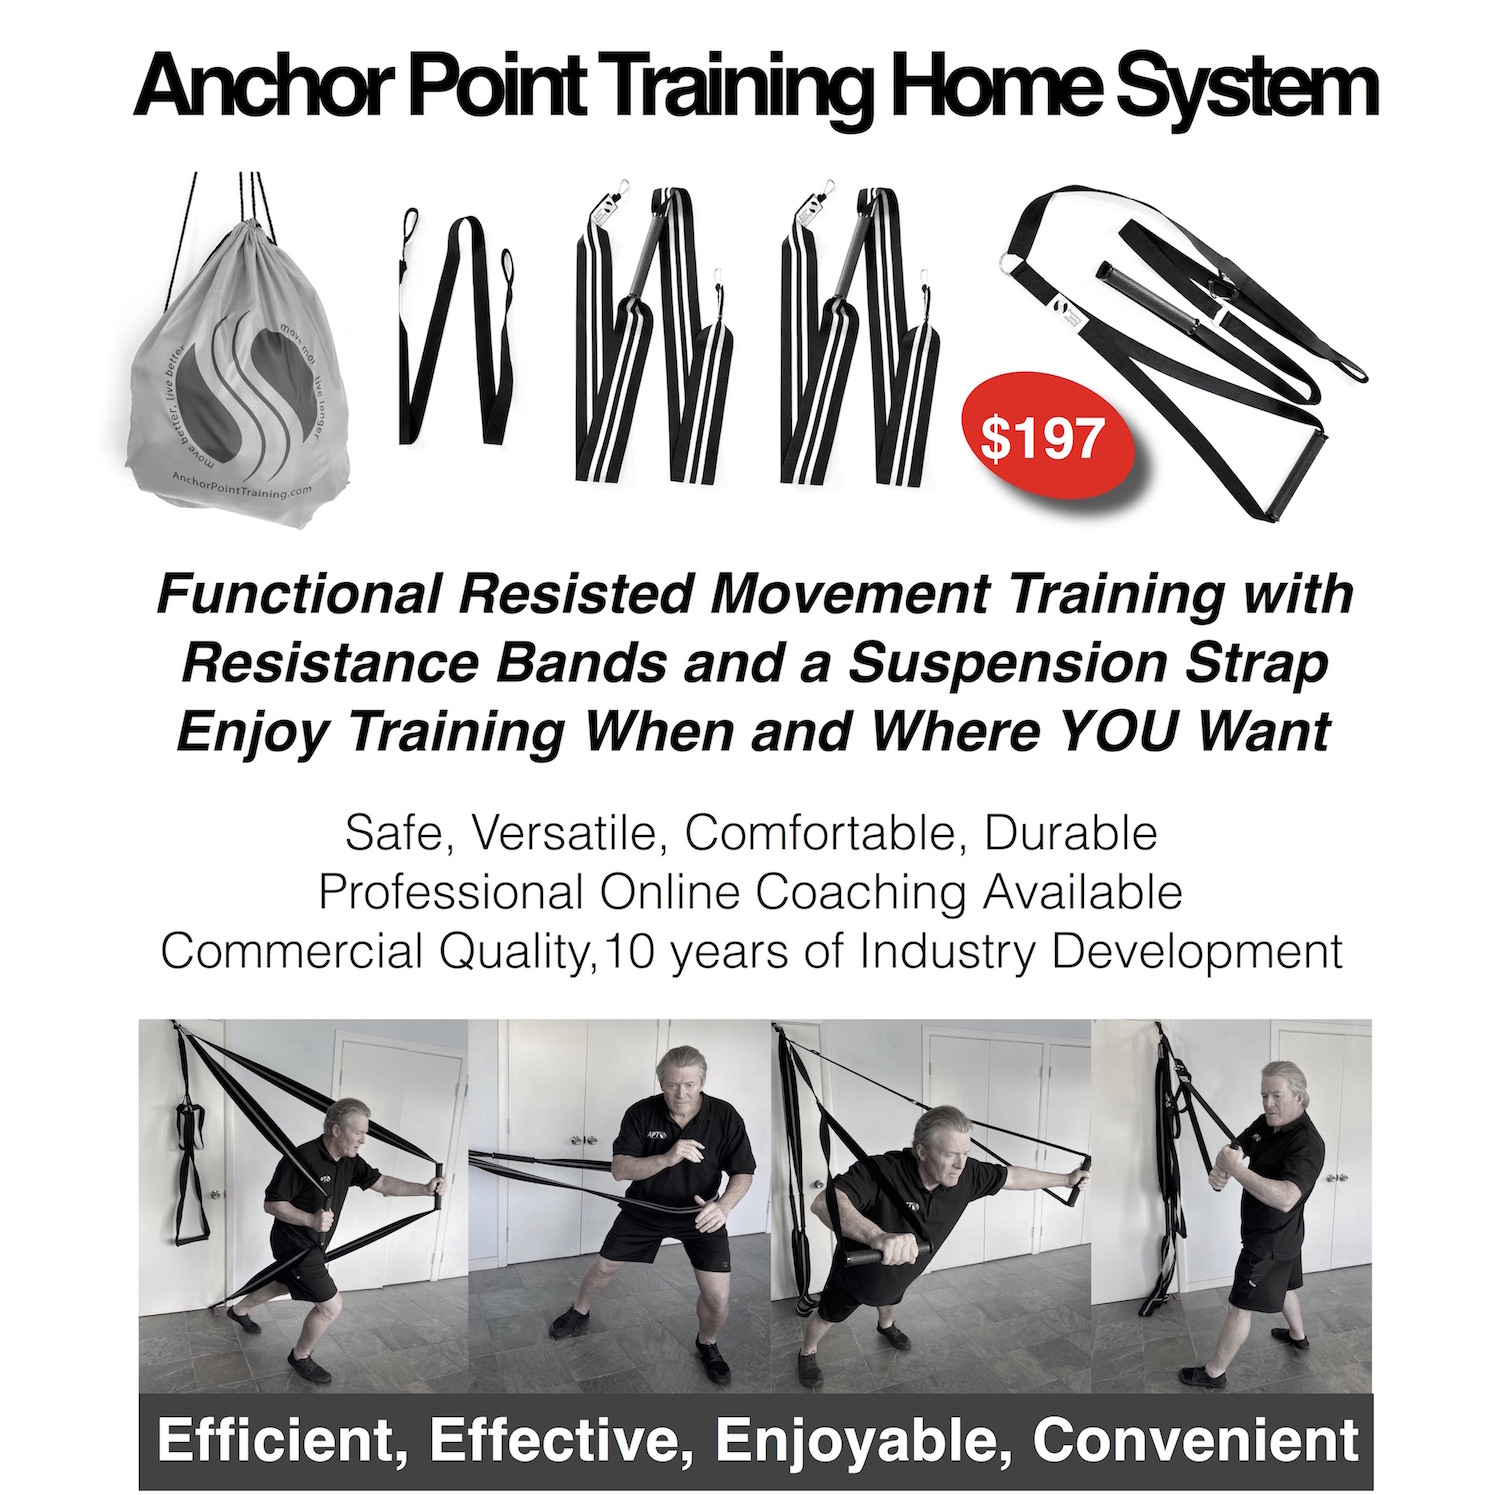 Anchor Point Training Home System